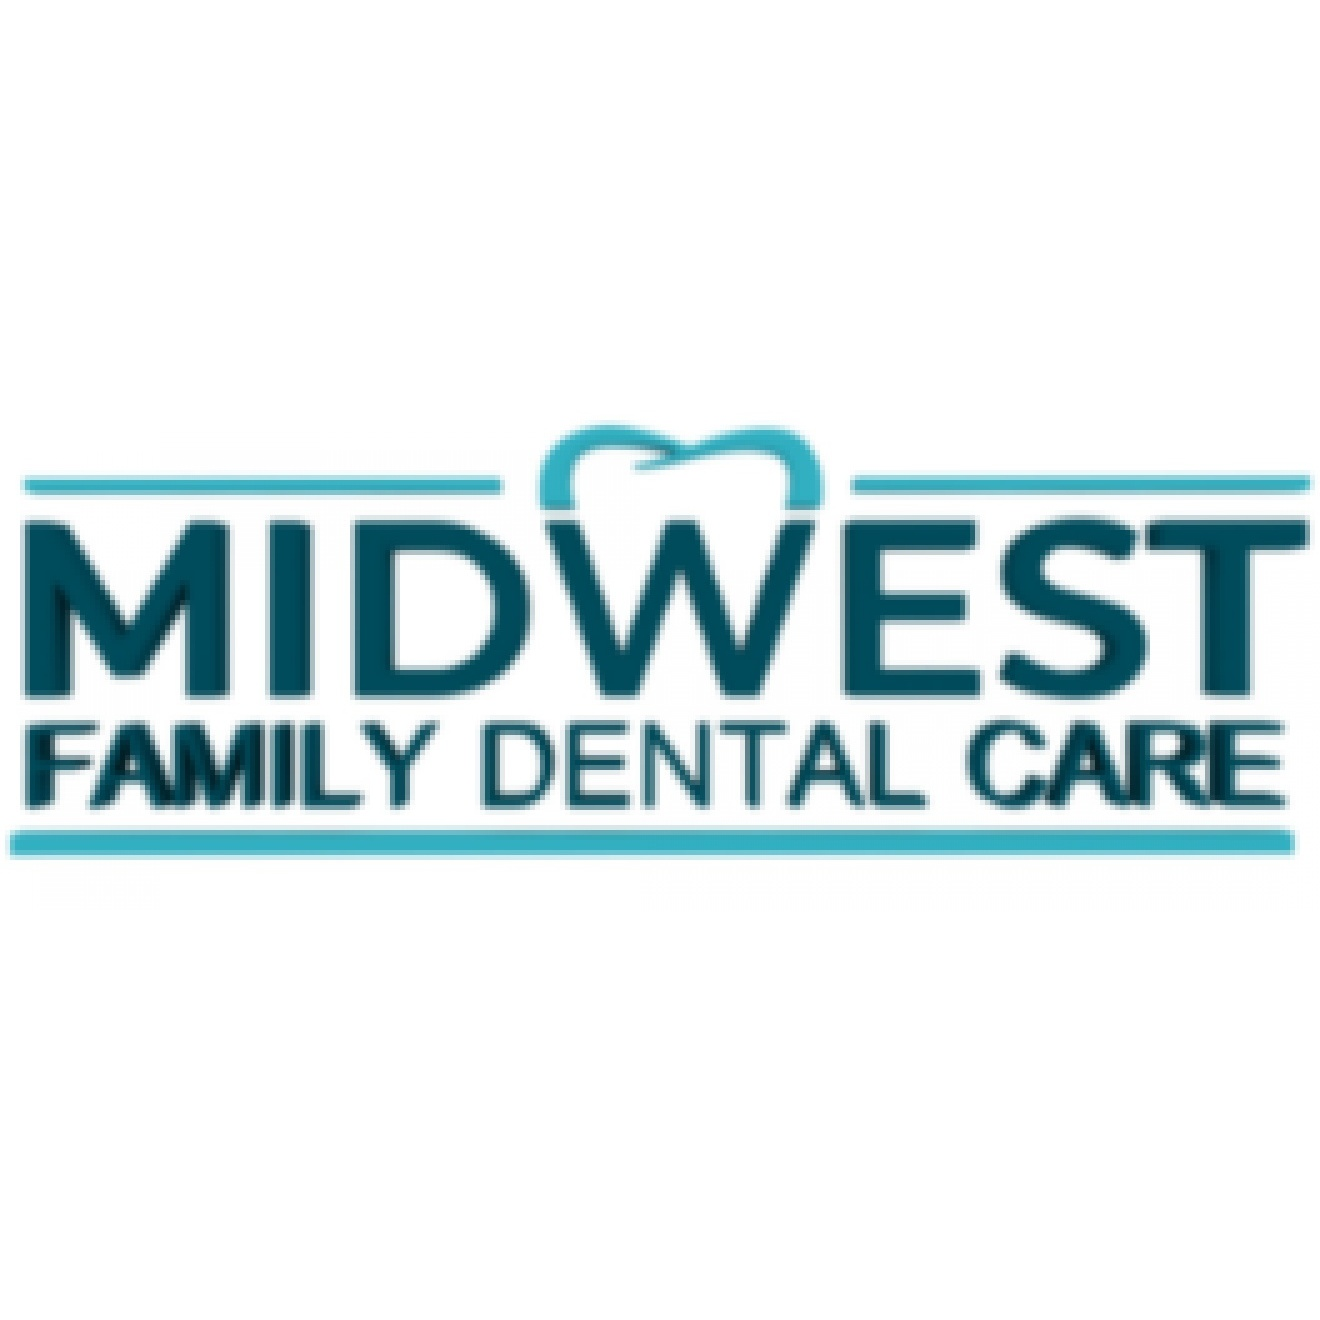 Midwest Family Dental Care - Grand Rapids